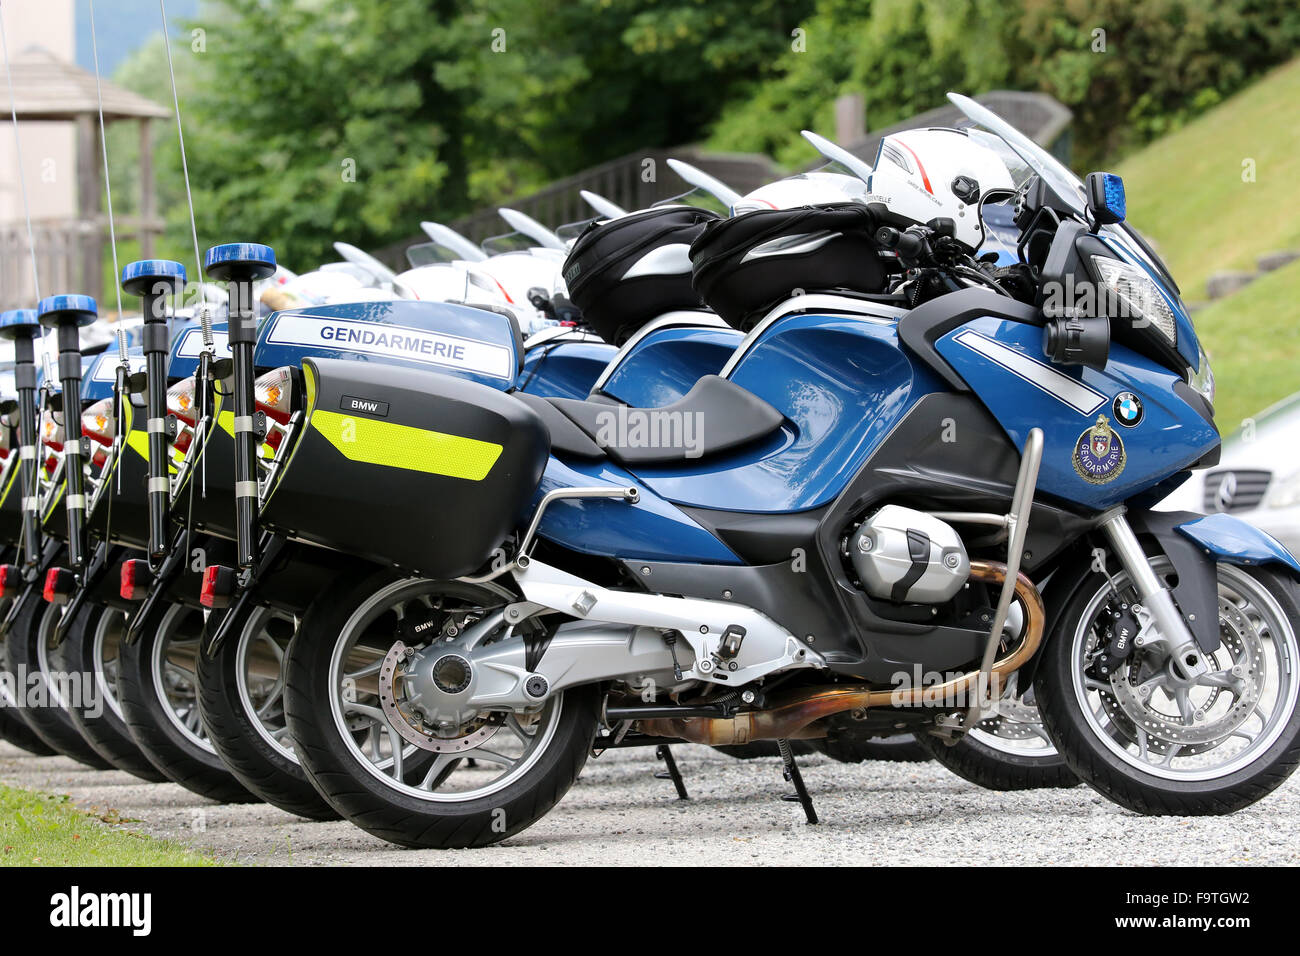 French police motorcycles. - Stock Image